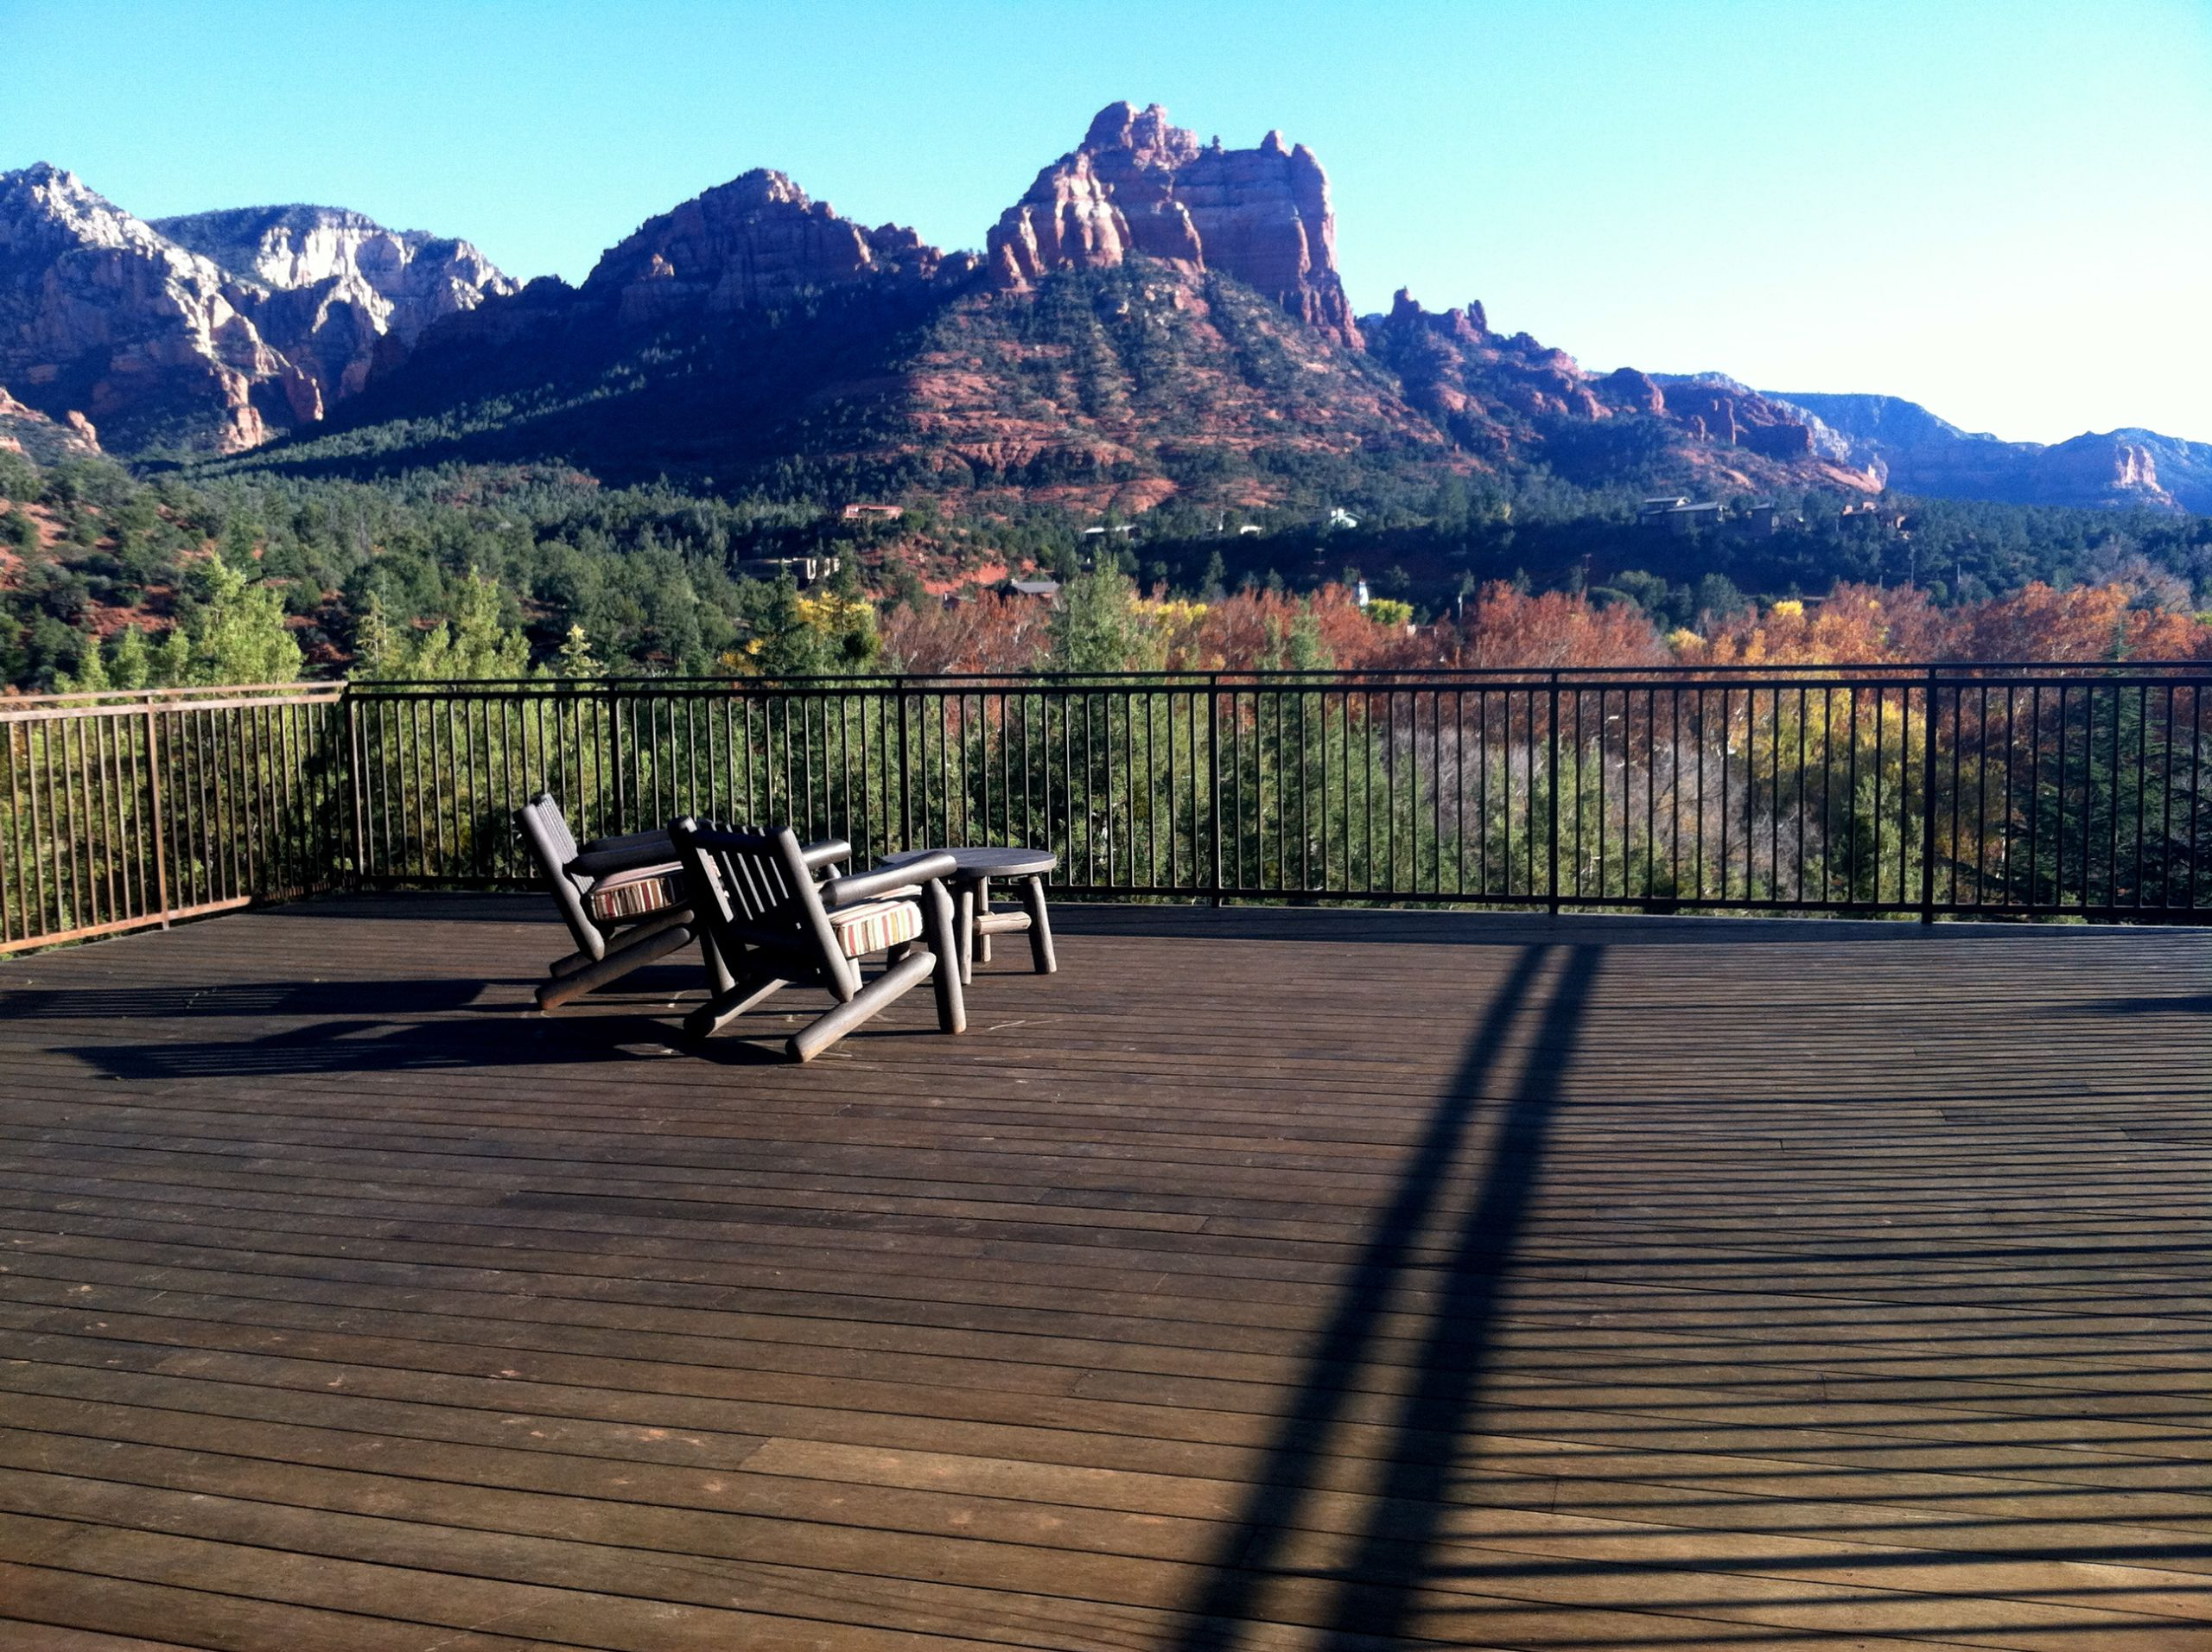 Taking in Sedona